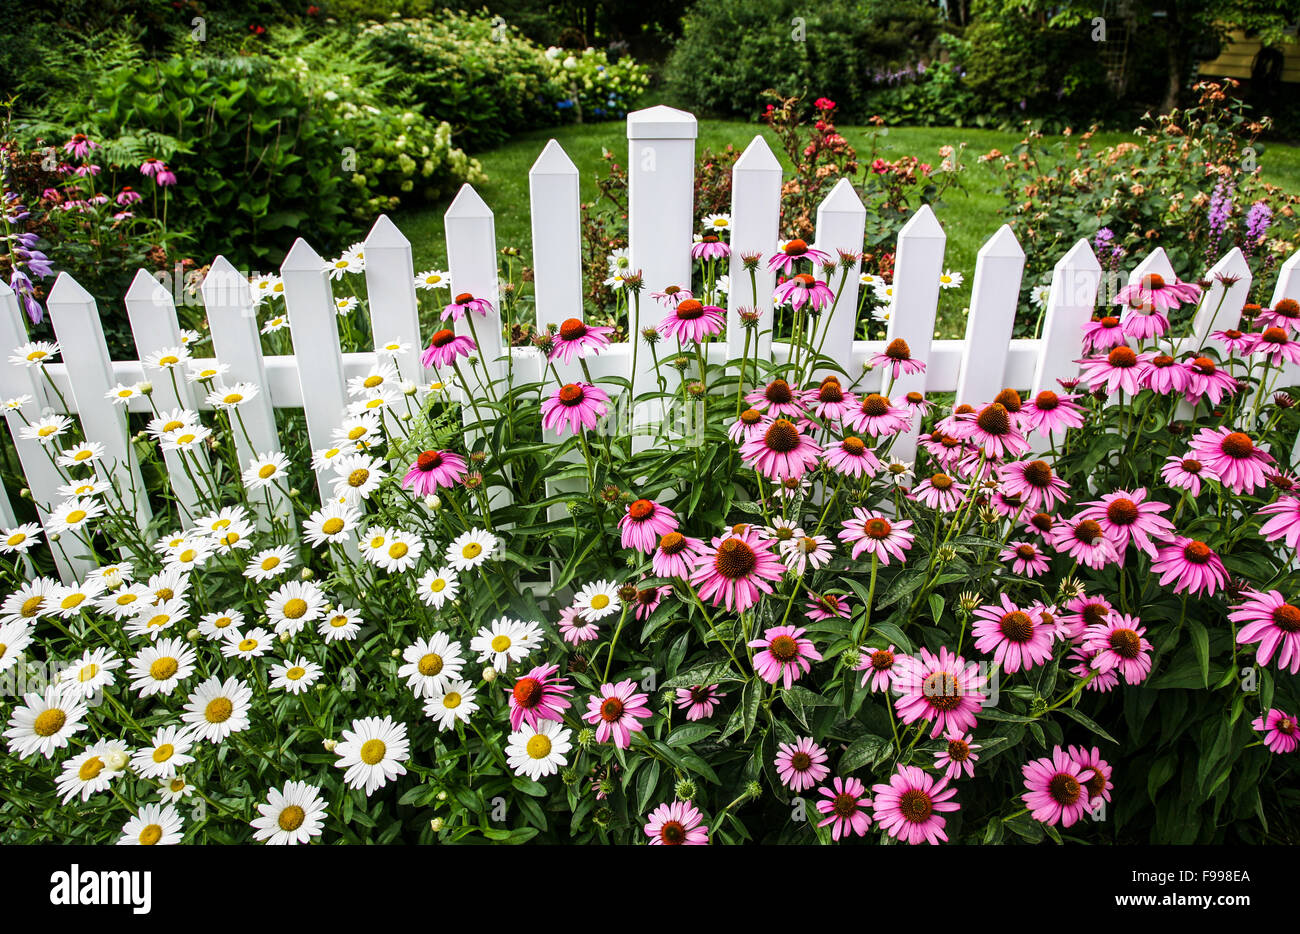 Beautiful English Garden Border With Purple Cone Flowers, Daisies Along A White  Picket Fence, New Jersey, USA